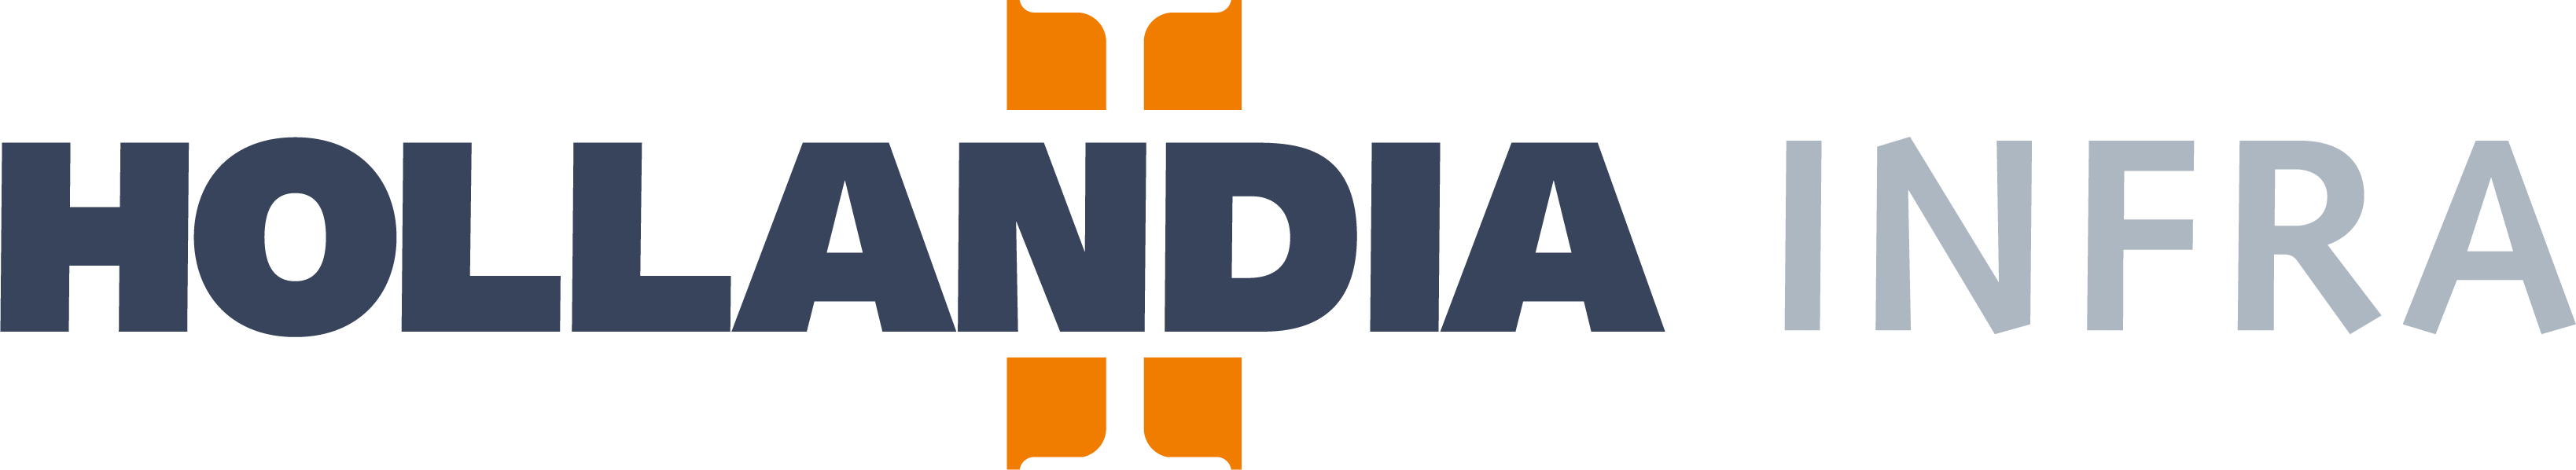 Hollandia-Infra logo